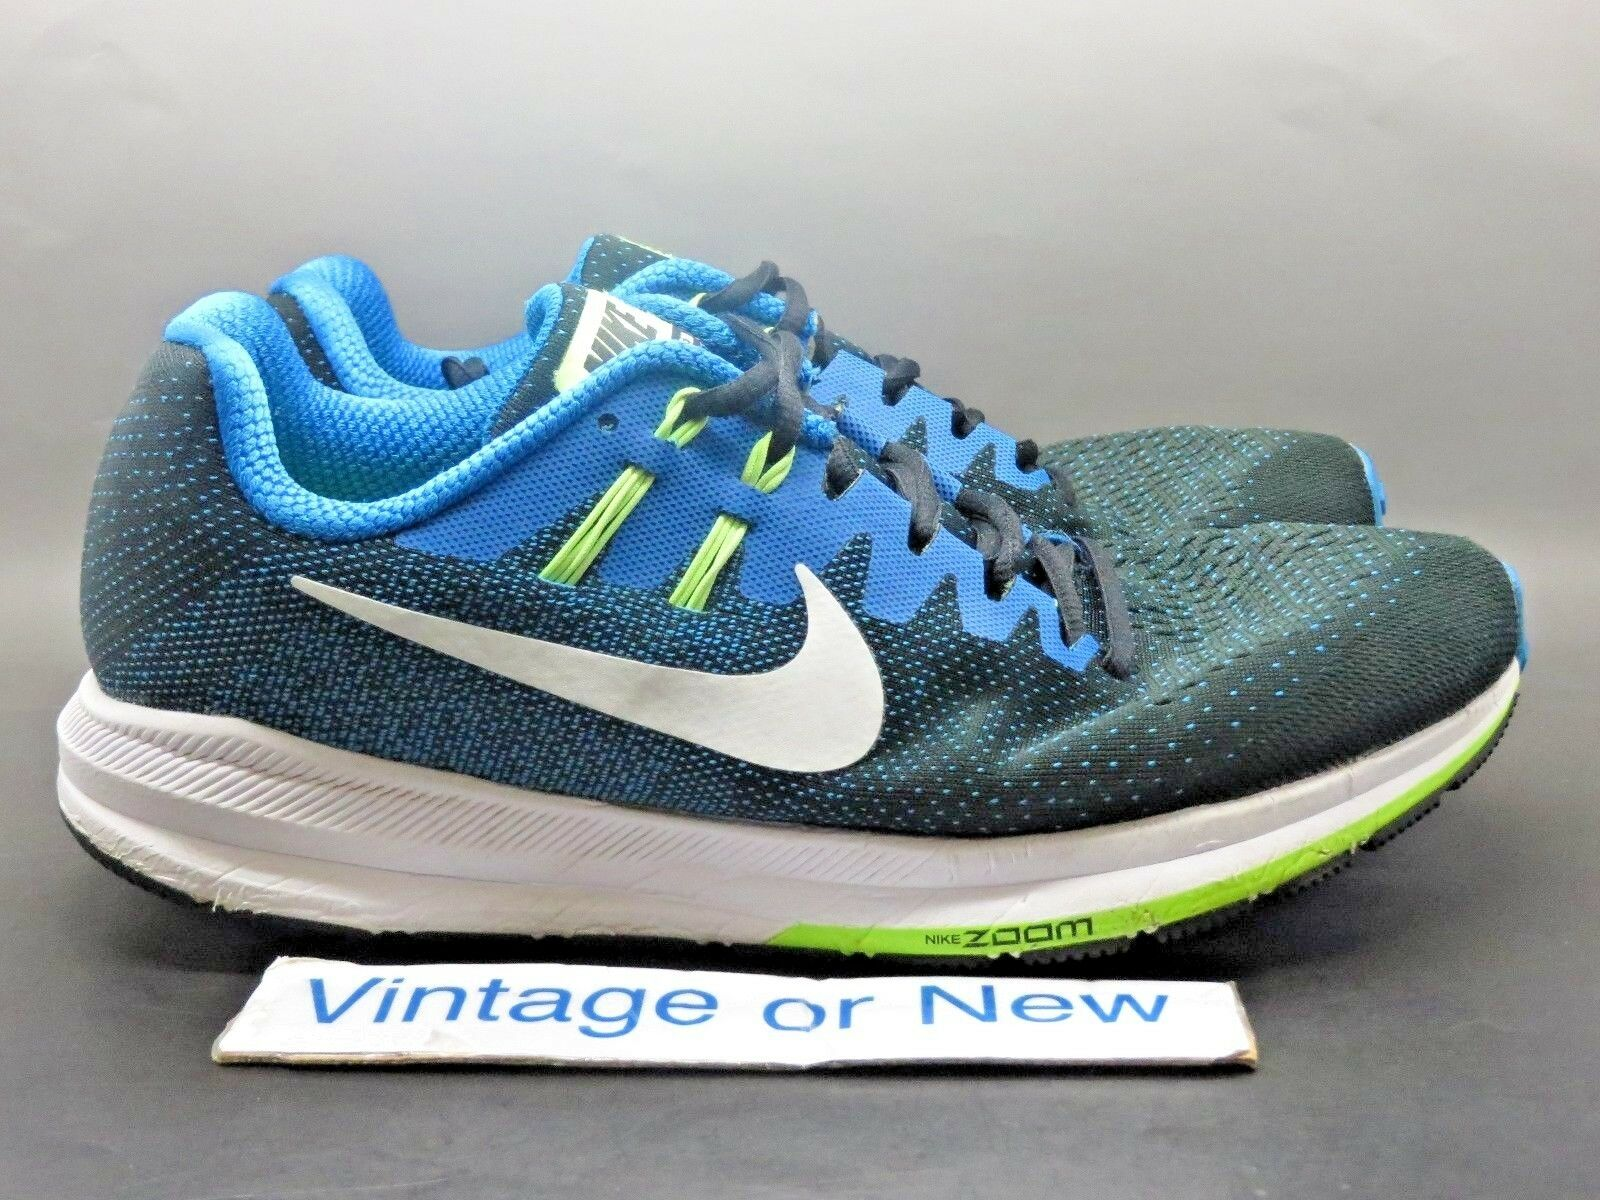 Nike Air Zoom Structure Black Photo Blue Green Running 849574-004 Price reduction The most popular shoes for men and women